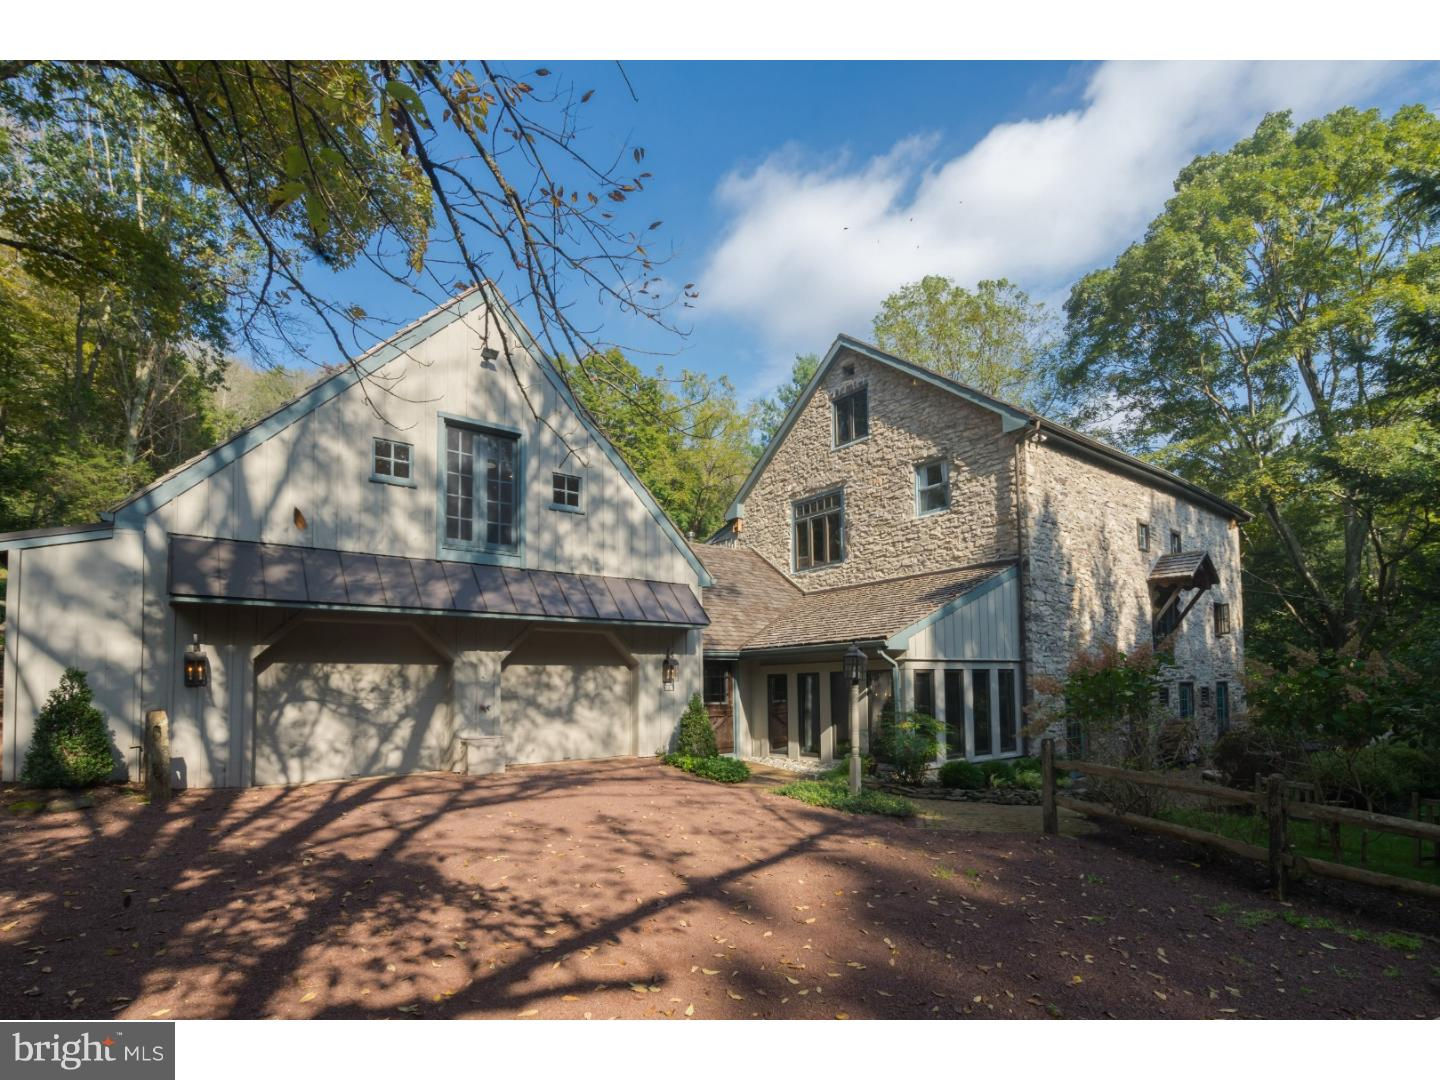 6455 FLEECYDALE ROAD, SOLEBURY, PA 18913